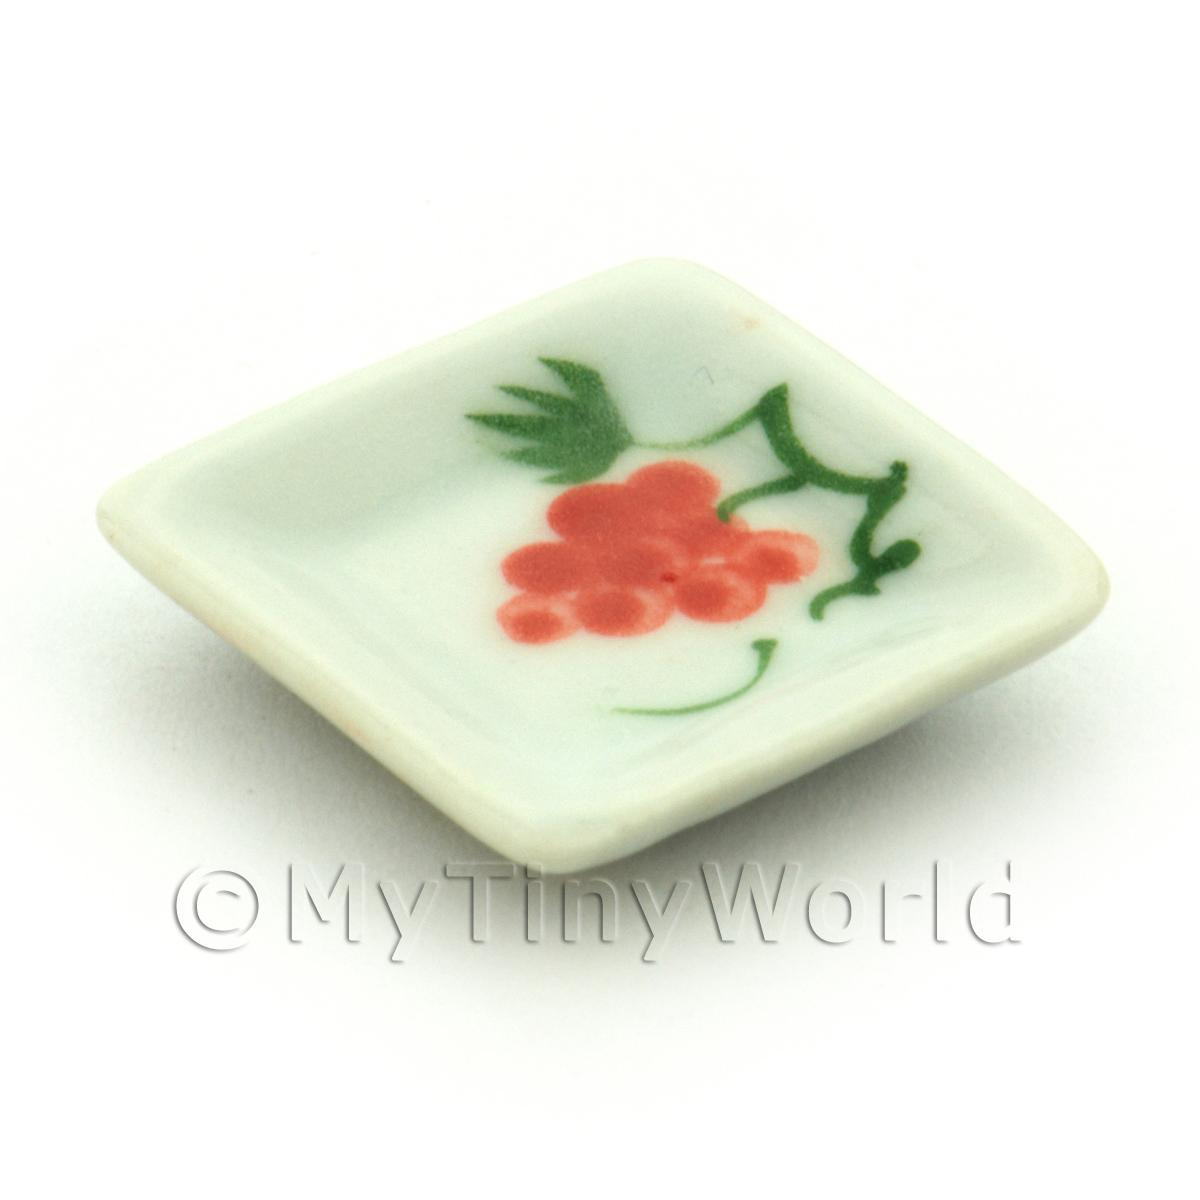 Dolls House Miniature Grape Design 21mm Ceramic Square Plate